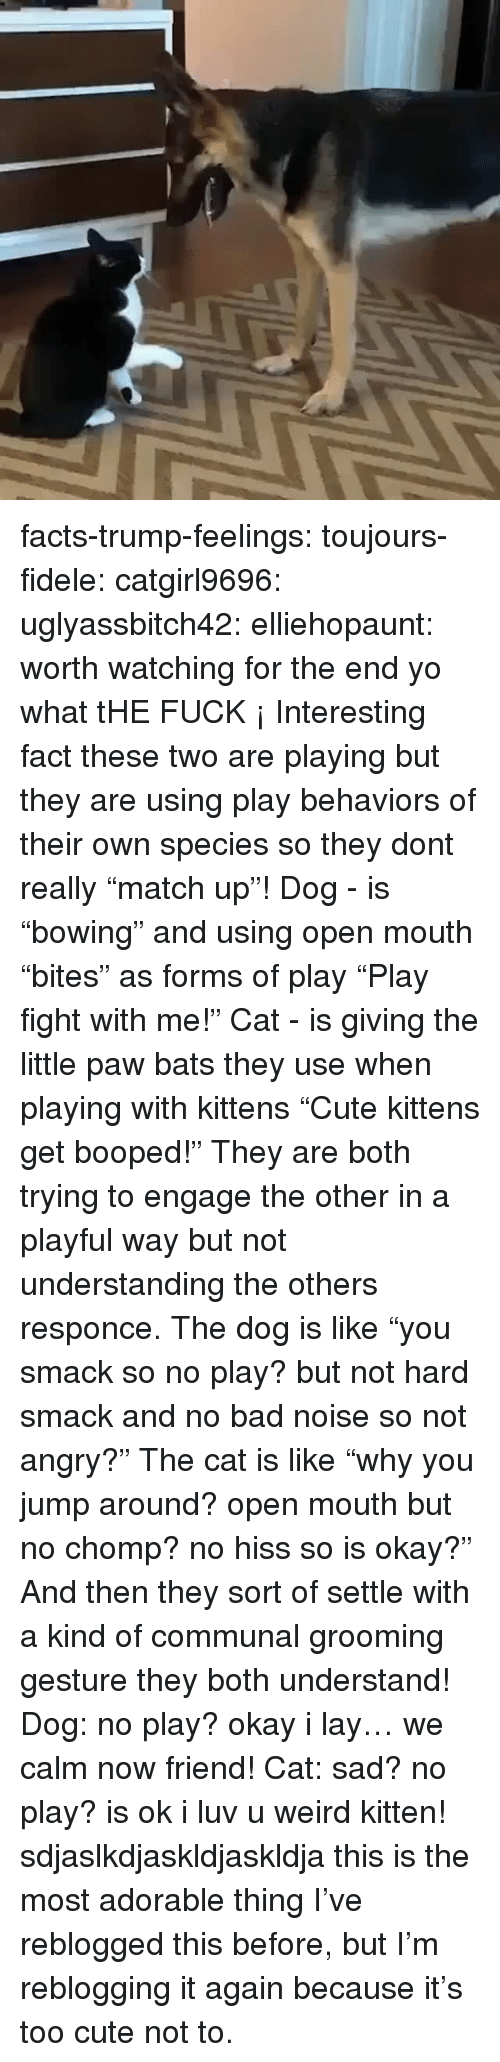 "Bad, Cute, and Facts: facts-trump-feelings:  toujours-fidele:  catgirl9696:  uglyassbitch42:  elliehopaunt: worth watching for the end  yo what tHE FUCK ¡   Interesting fact these two are playing but they are using play behaviors of their own species so they dont really ""match up""! Dog - is ""bowing"" and using open mouth ""bites"" as forms of play  ""Play fight with me!"" Cat - is giving the little paw bats they use when playing with kittens ""Cute kittens get booped!"" They are both trying to engage the other in a playful way but not understanding the others responce. The dog is like ""you smack so no play? but not hard smack and no bad noise so not angry?"" The cat is like ""why you jump around? open mouth but no chomp? no hiss so is okay?"" And then they sort of settle with a kind of communal grooming gesture they both understand! Dog: no play? okay i lay… we calm now friend! Cat: sad? no play? is ok i luv u weird kitten!   sdjaslkdjaskldjaskldja this is the most adorable thing  I've reblogged this before, but I'm reblogging it again because it's too cute not to."